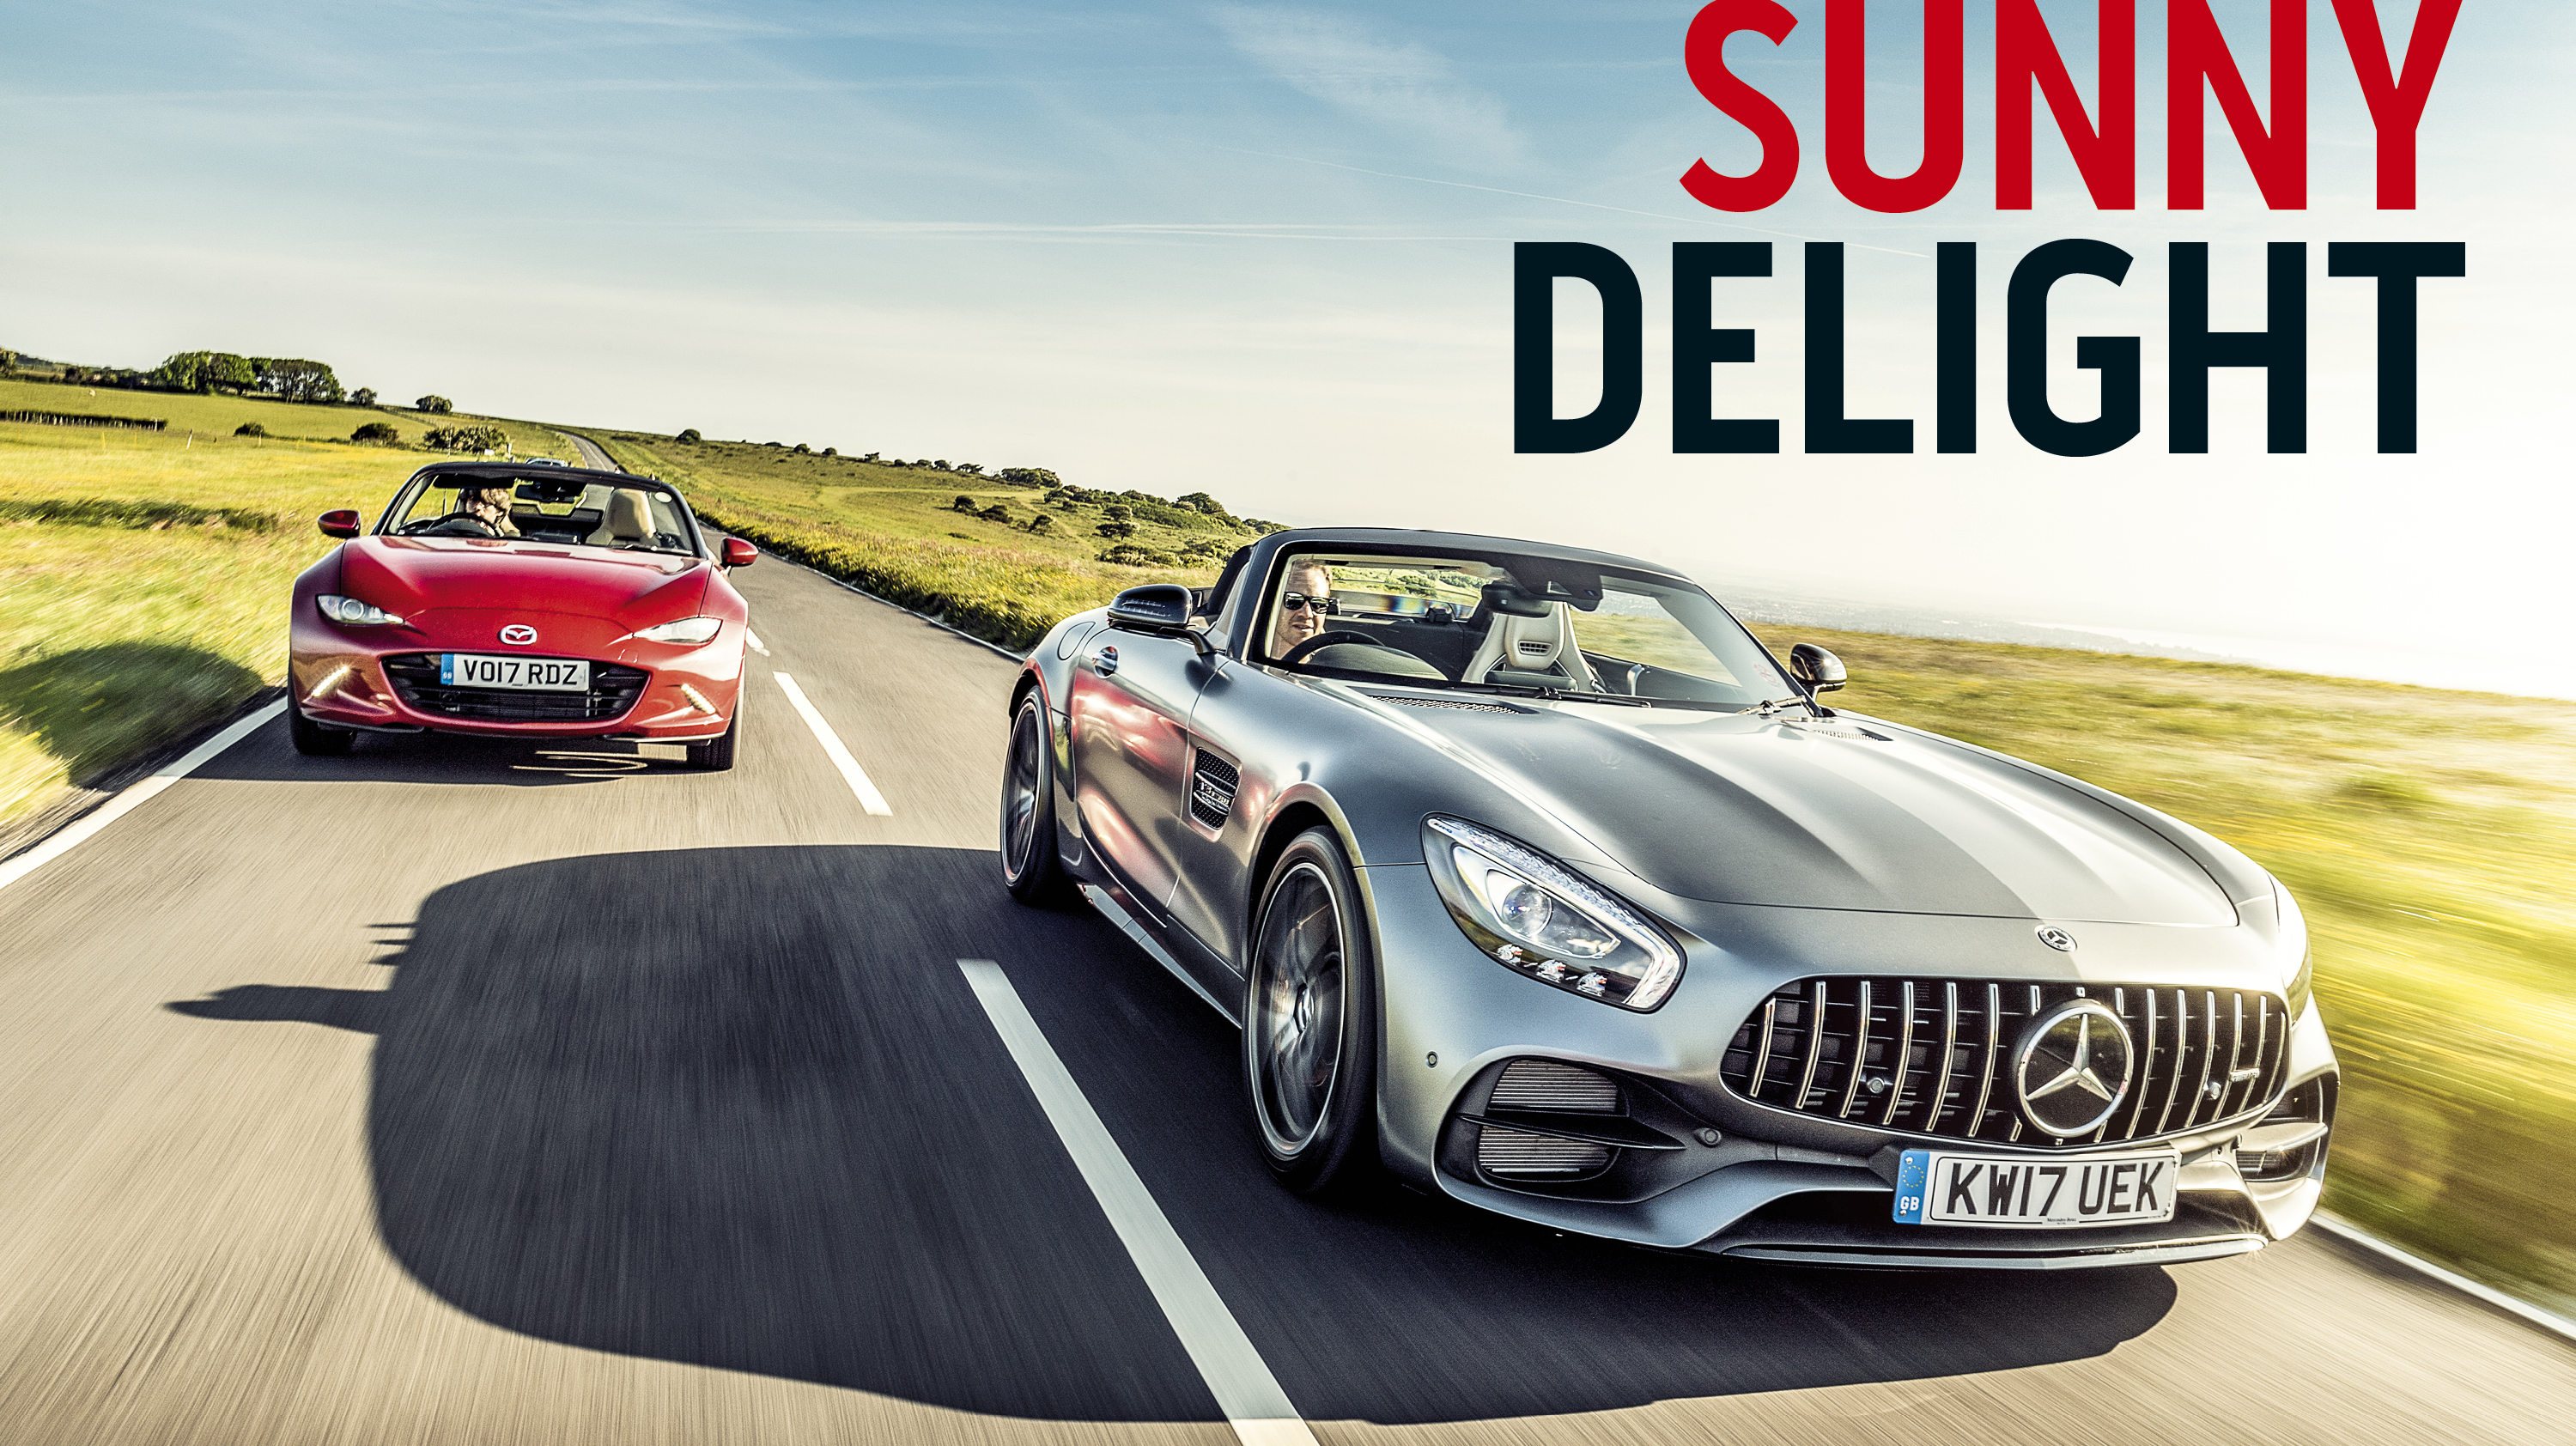 Mercedes-AMG GT C and Mazda MX-5 front